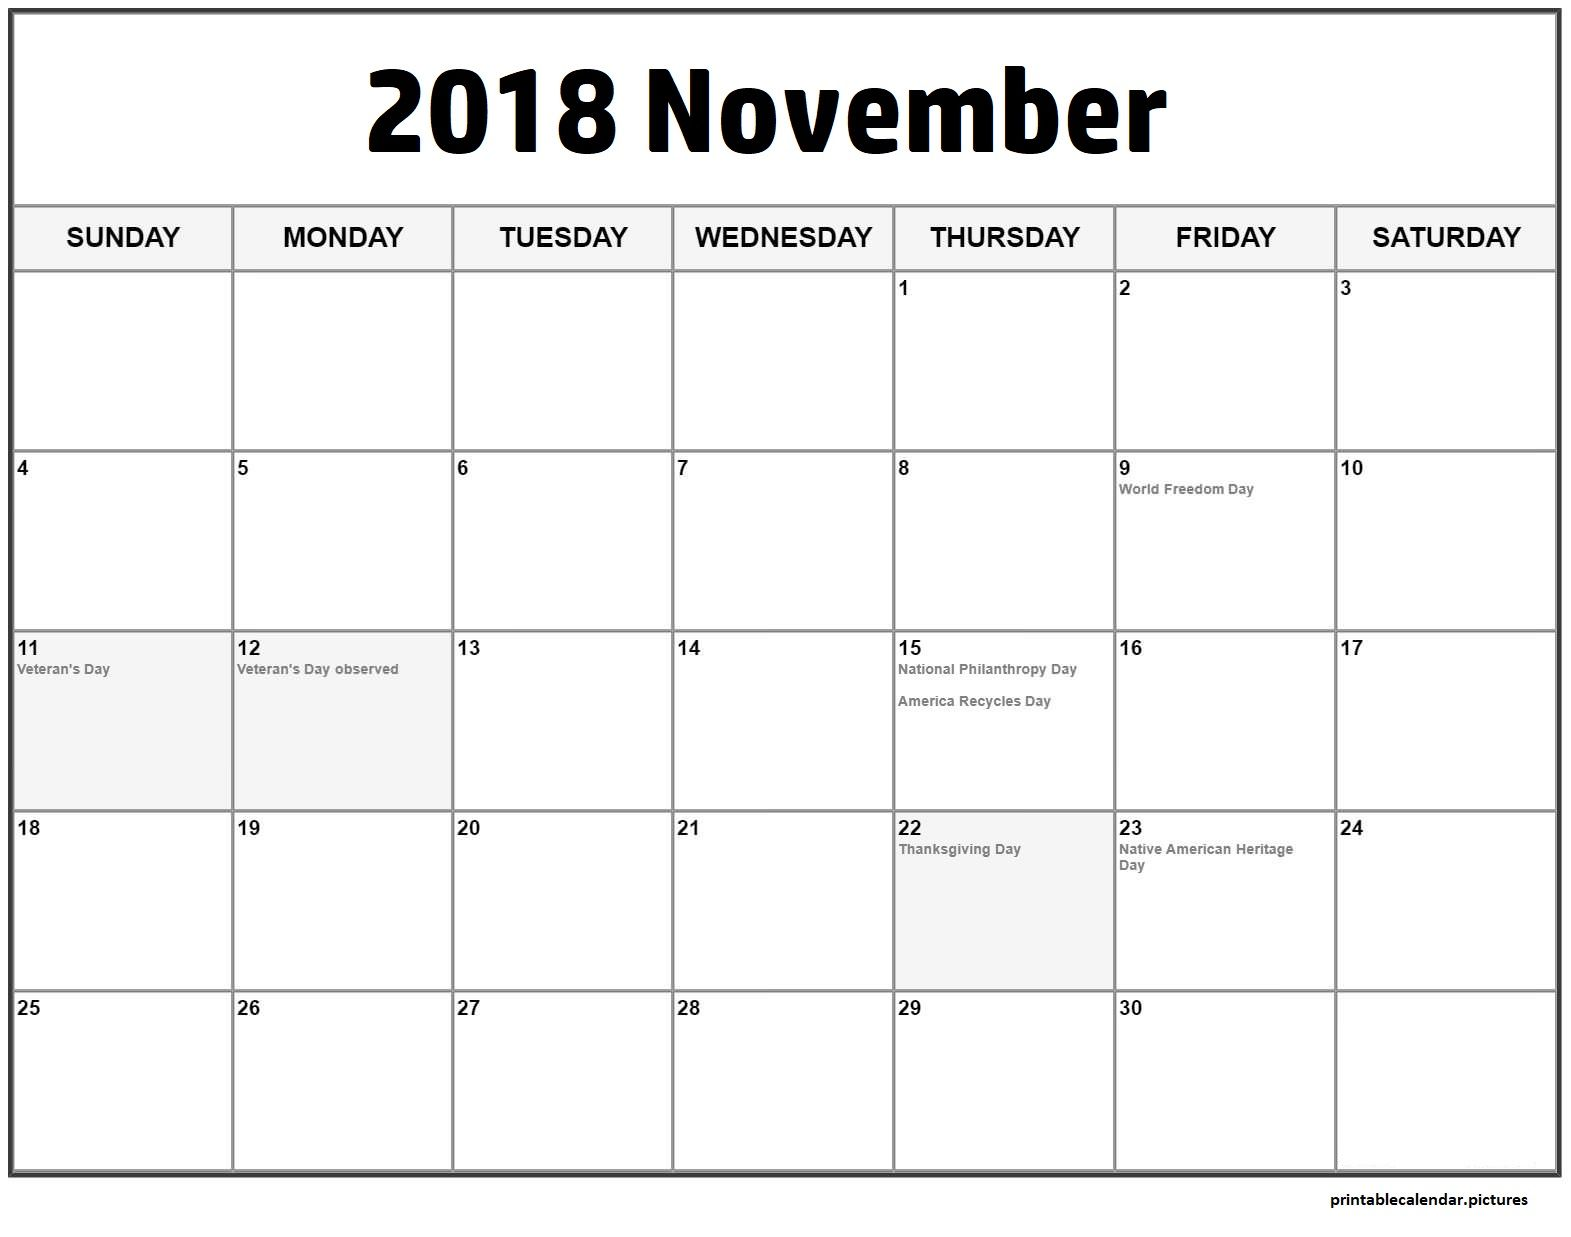 november 2018 calendar with holidays november calendar calendar 2018 holiday list bank holiday